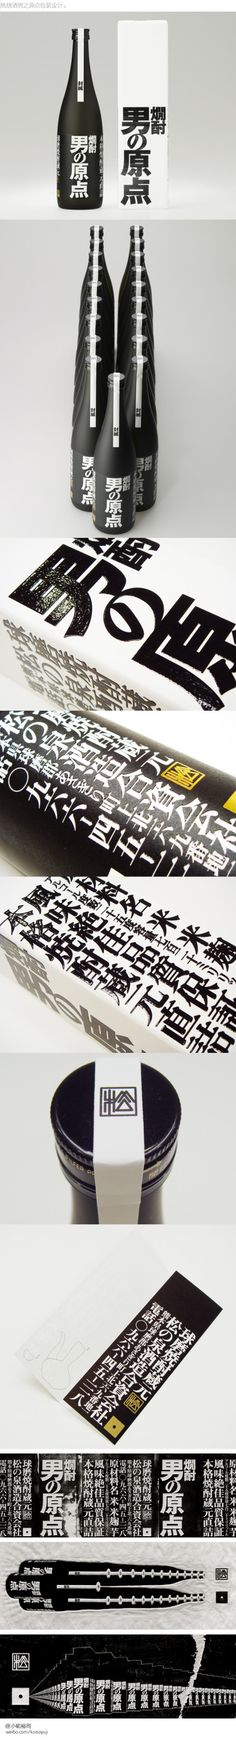 热烧酒男之原点包装设计。 Not sure what this says or is but great black and white #packaging #branding PD